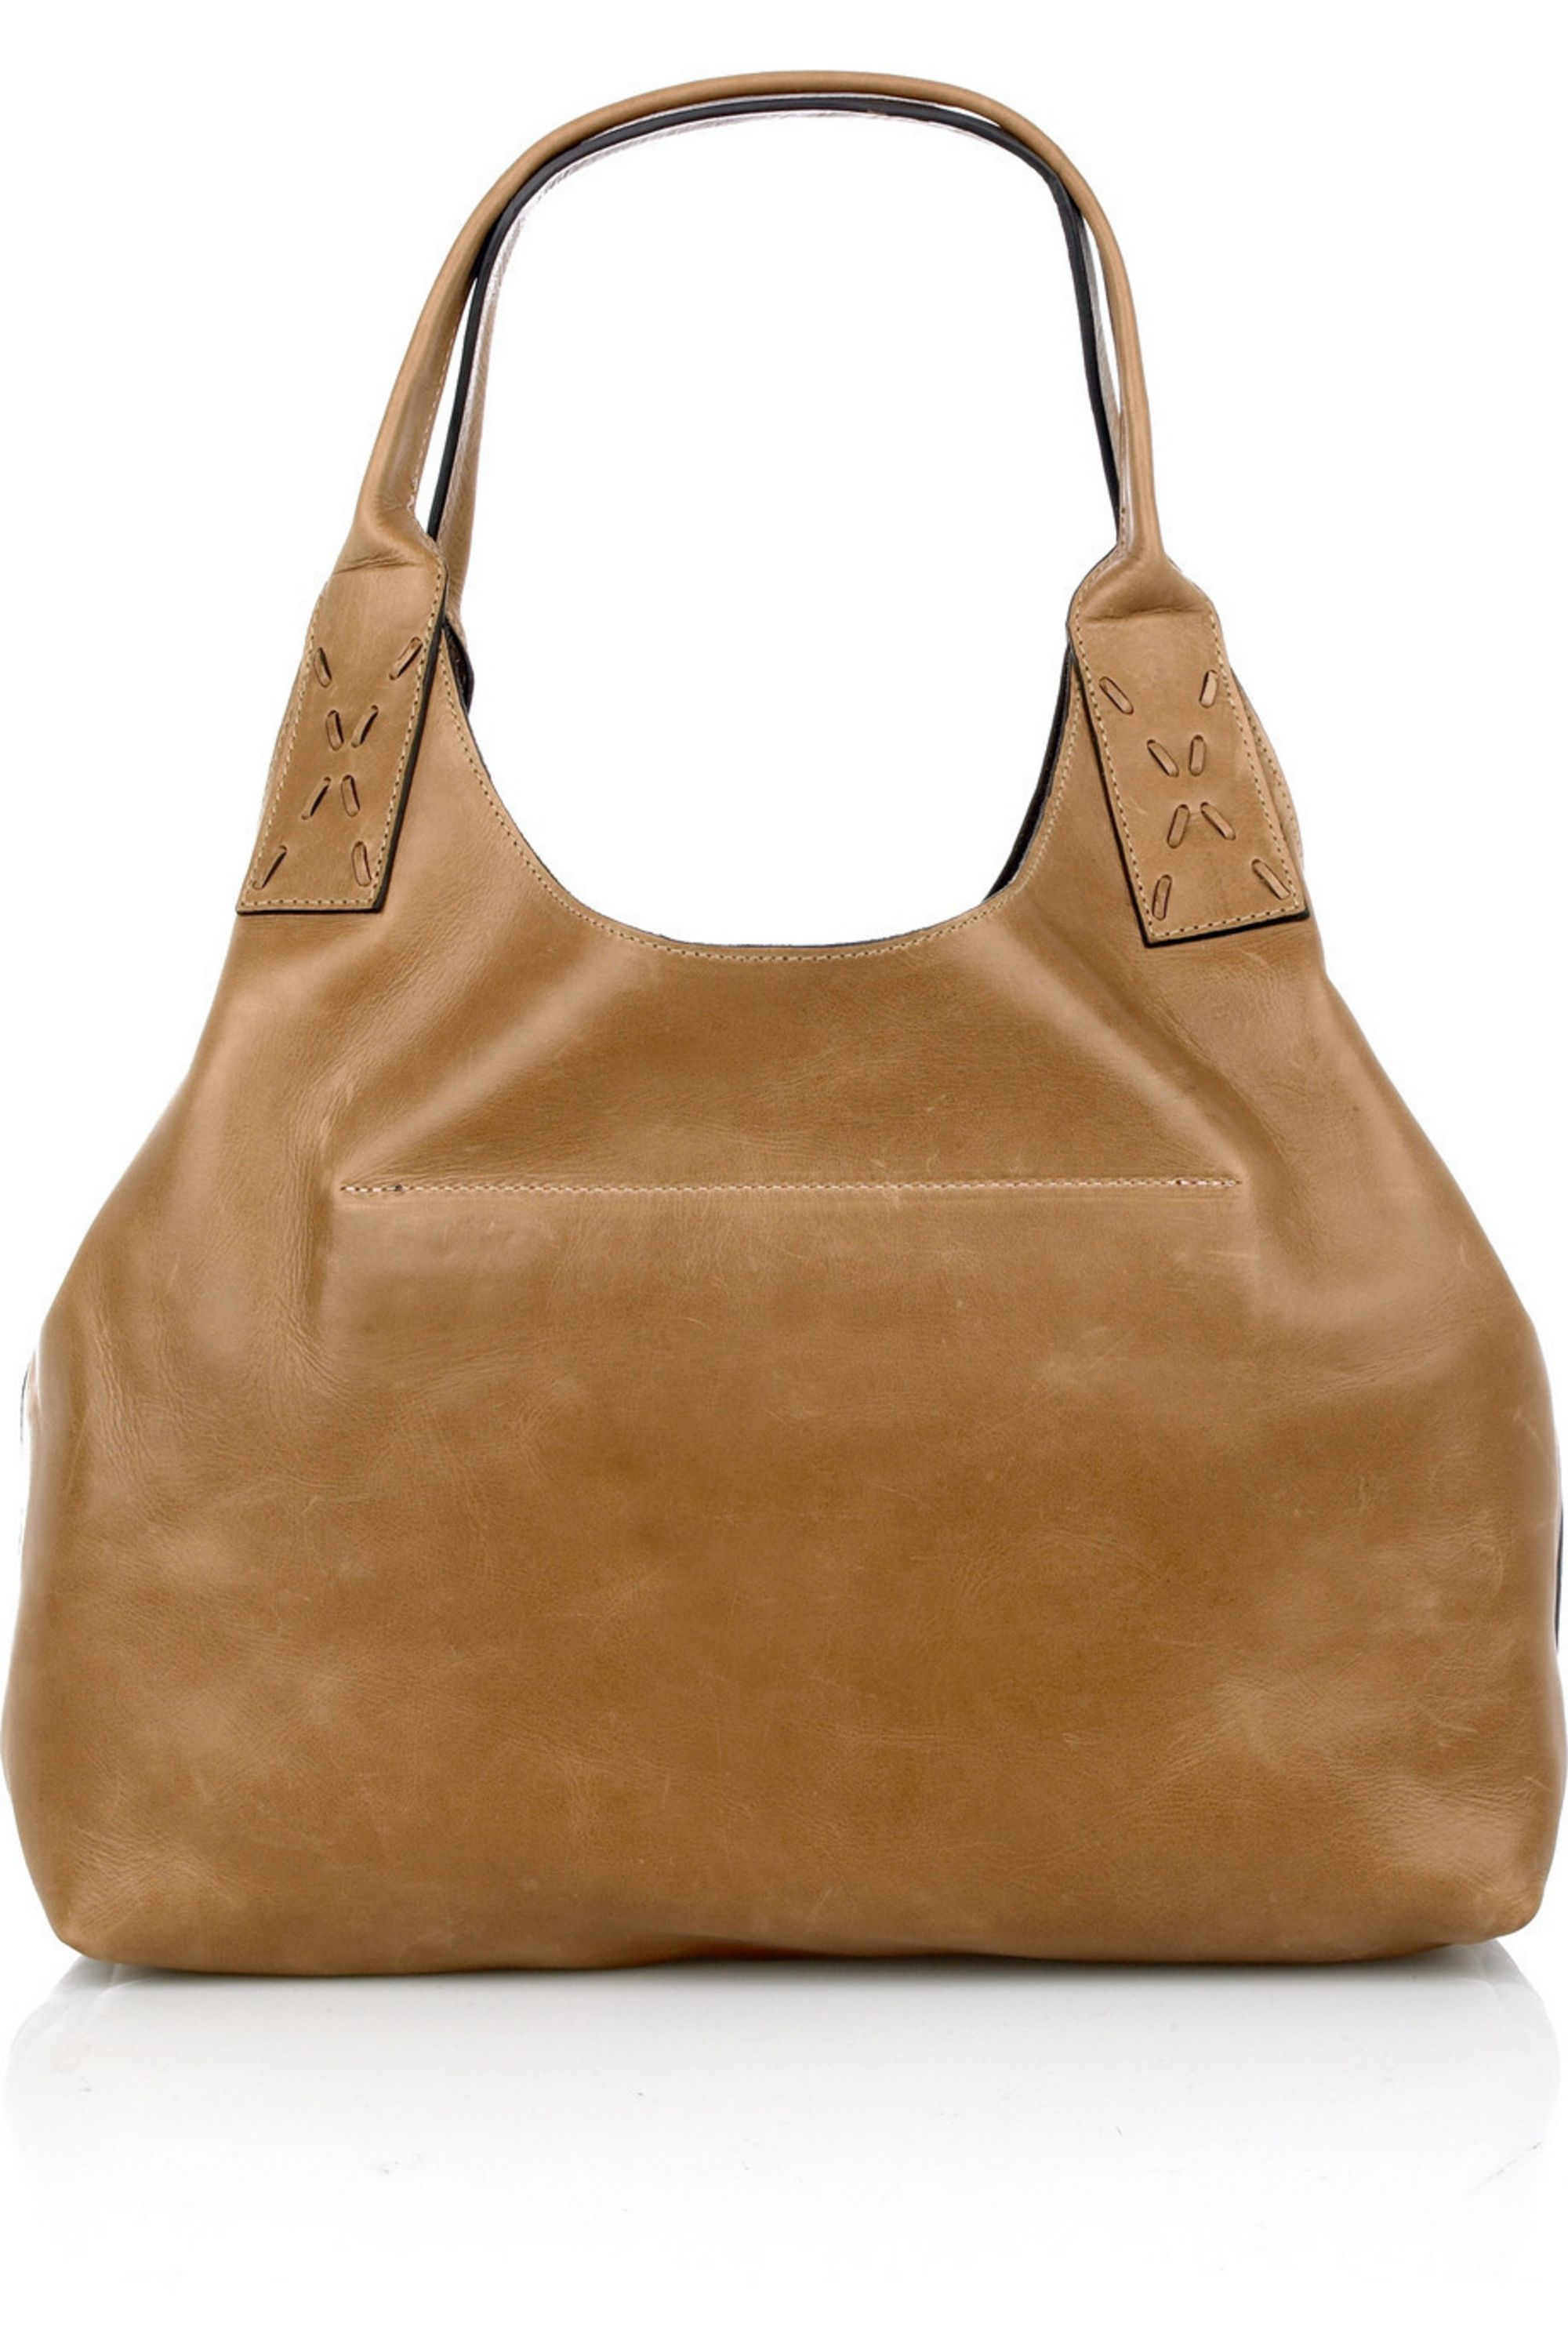 Mulberry Hanover leather bag